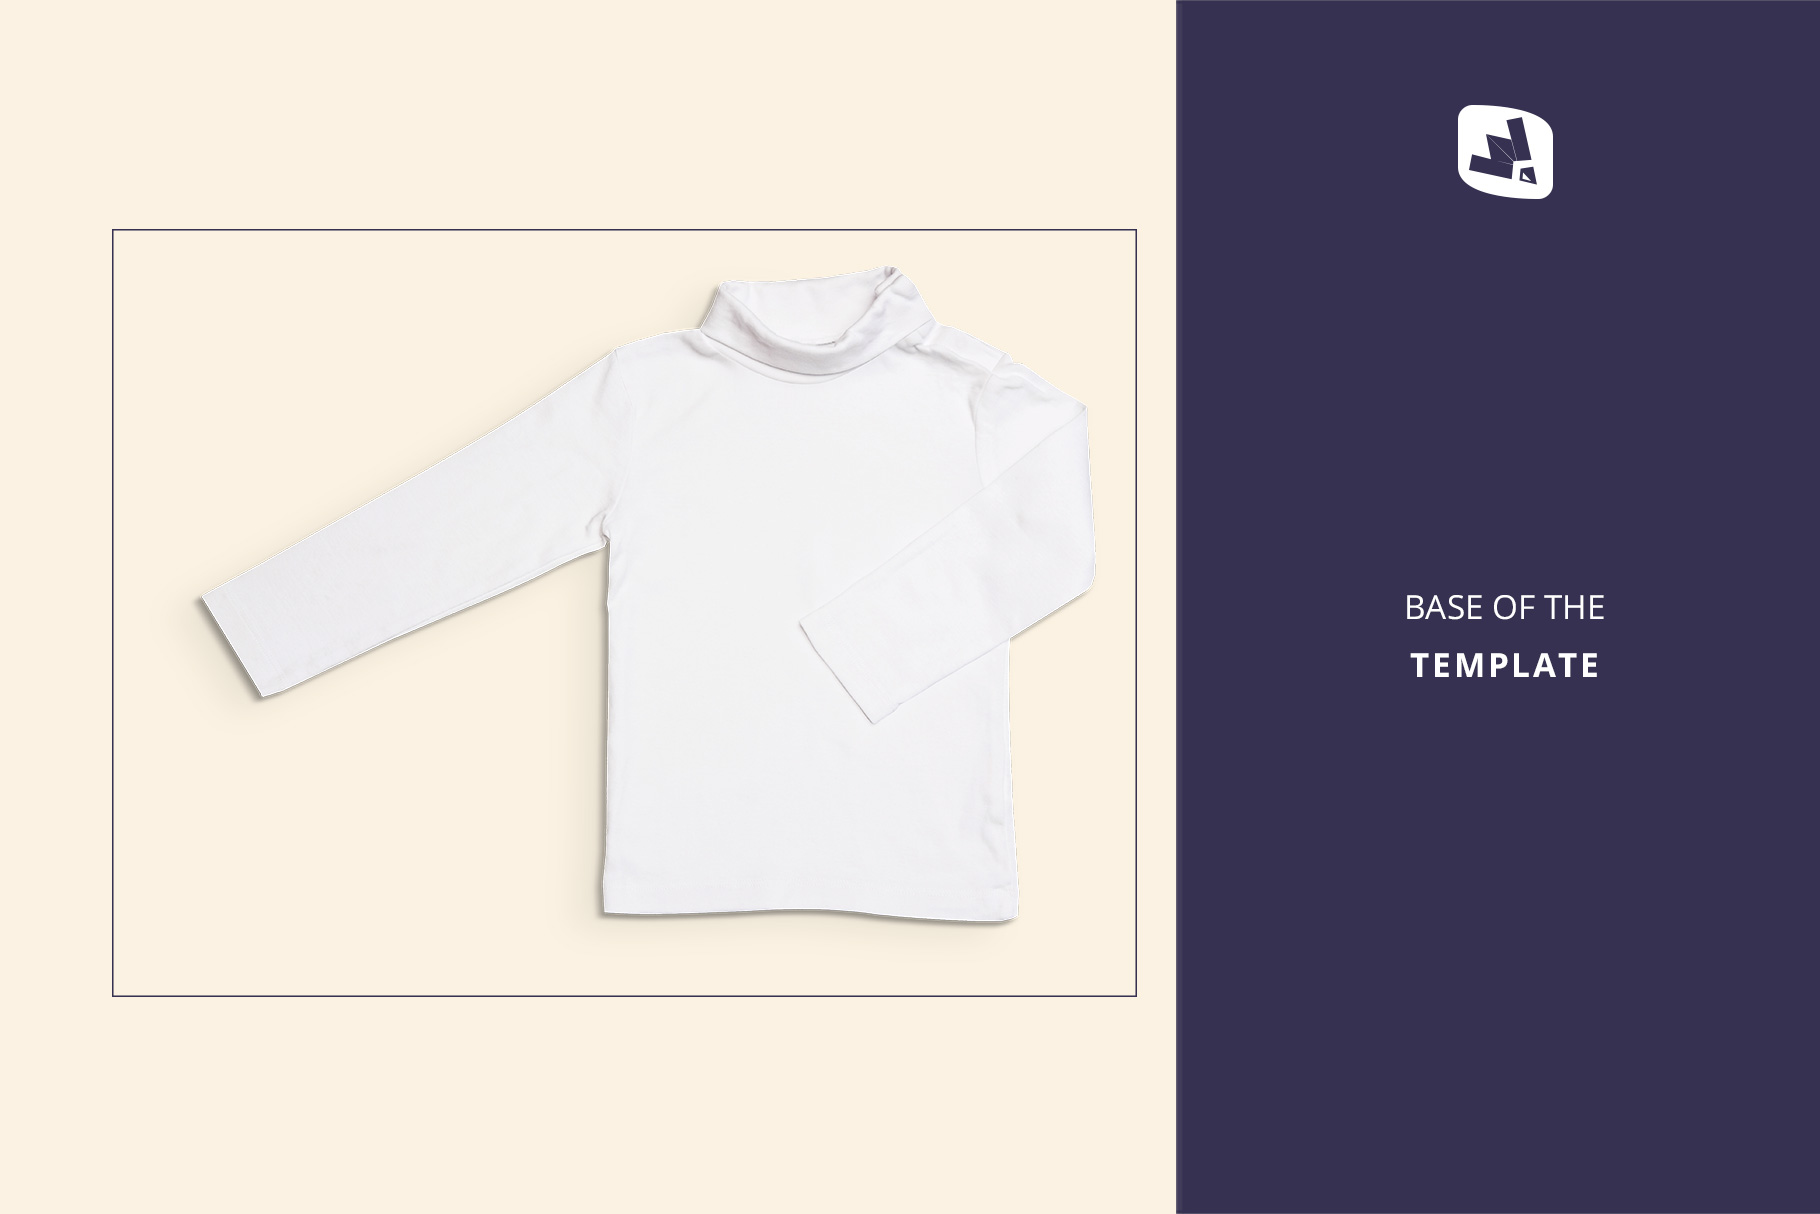 base image of the top view toddler turtle neck tshirt mockup